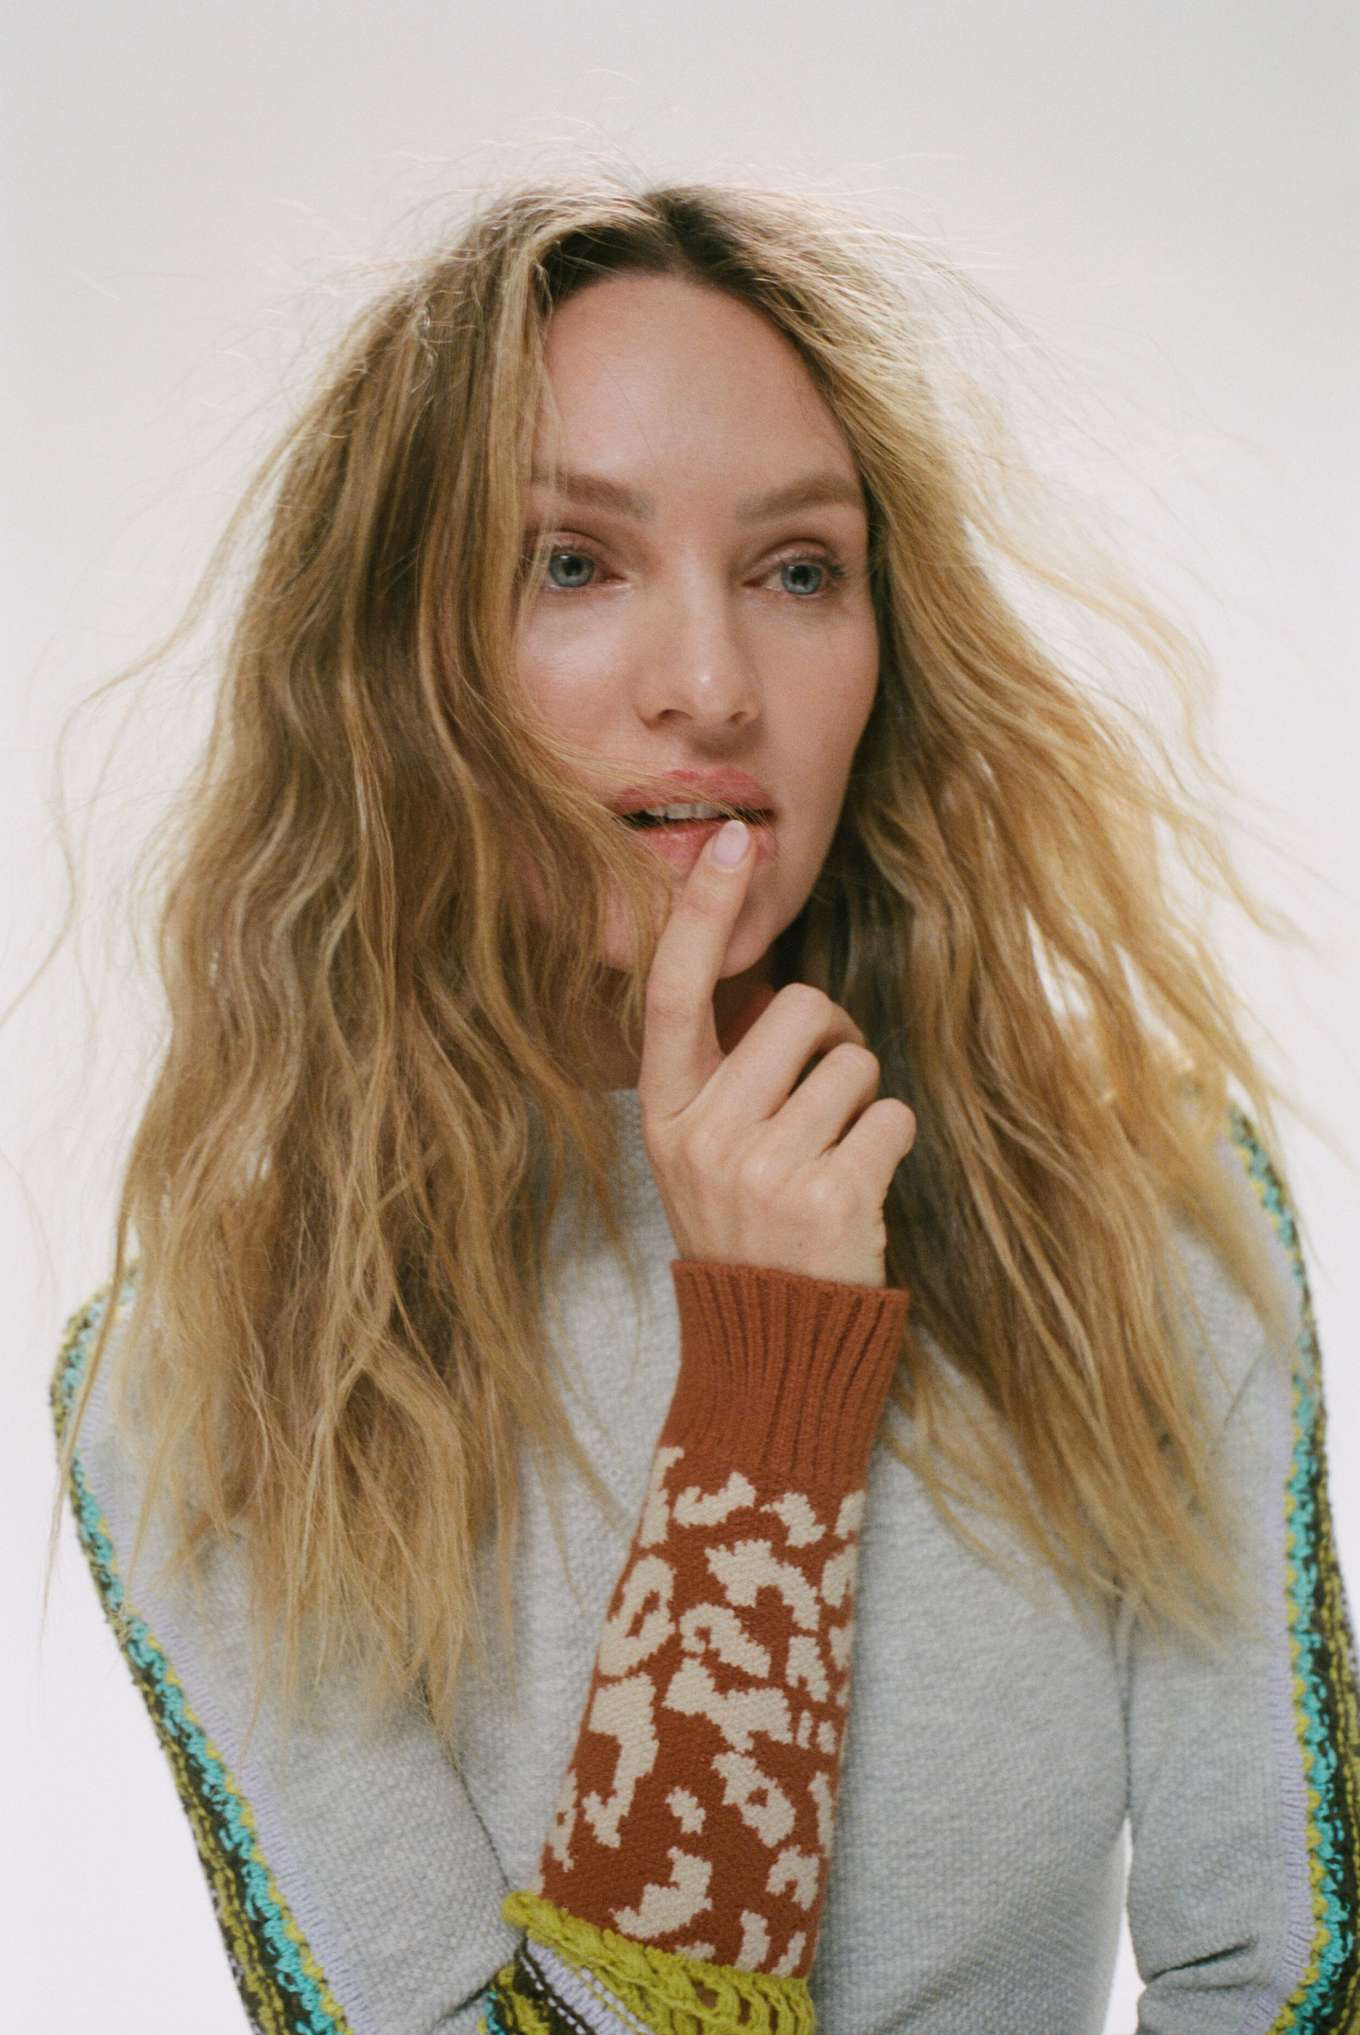 Candice Swanepoel 2019 : Candice Swanepoel for Free People Collection 2019-08